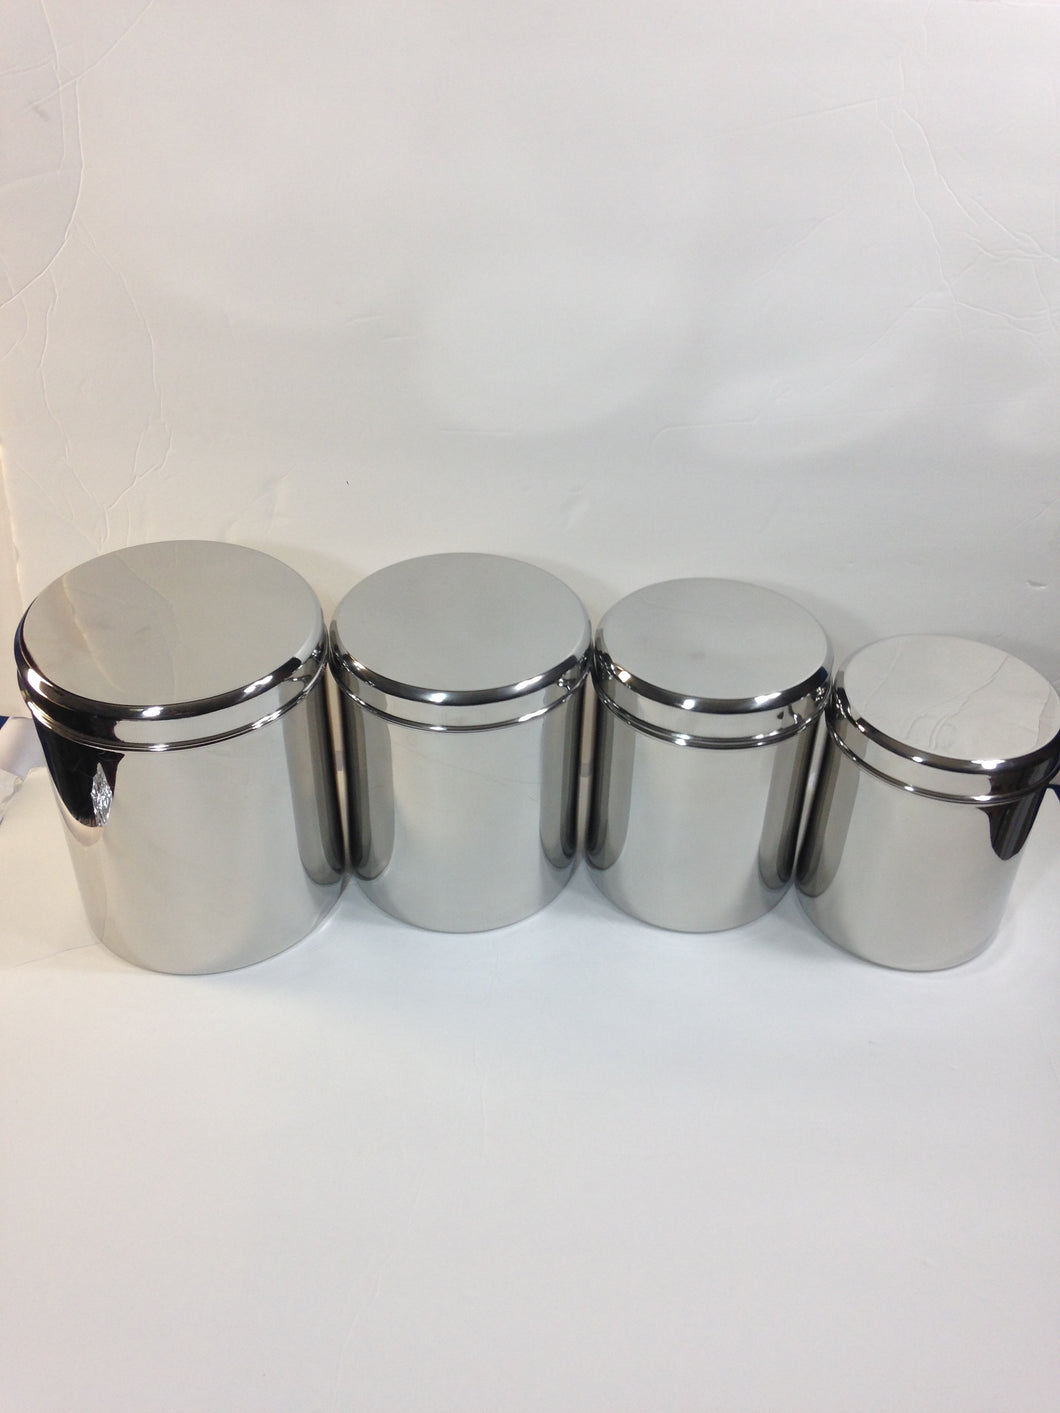 qualways jumbo stainless steel kitchen canister set of 4